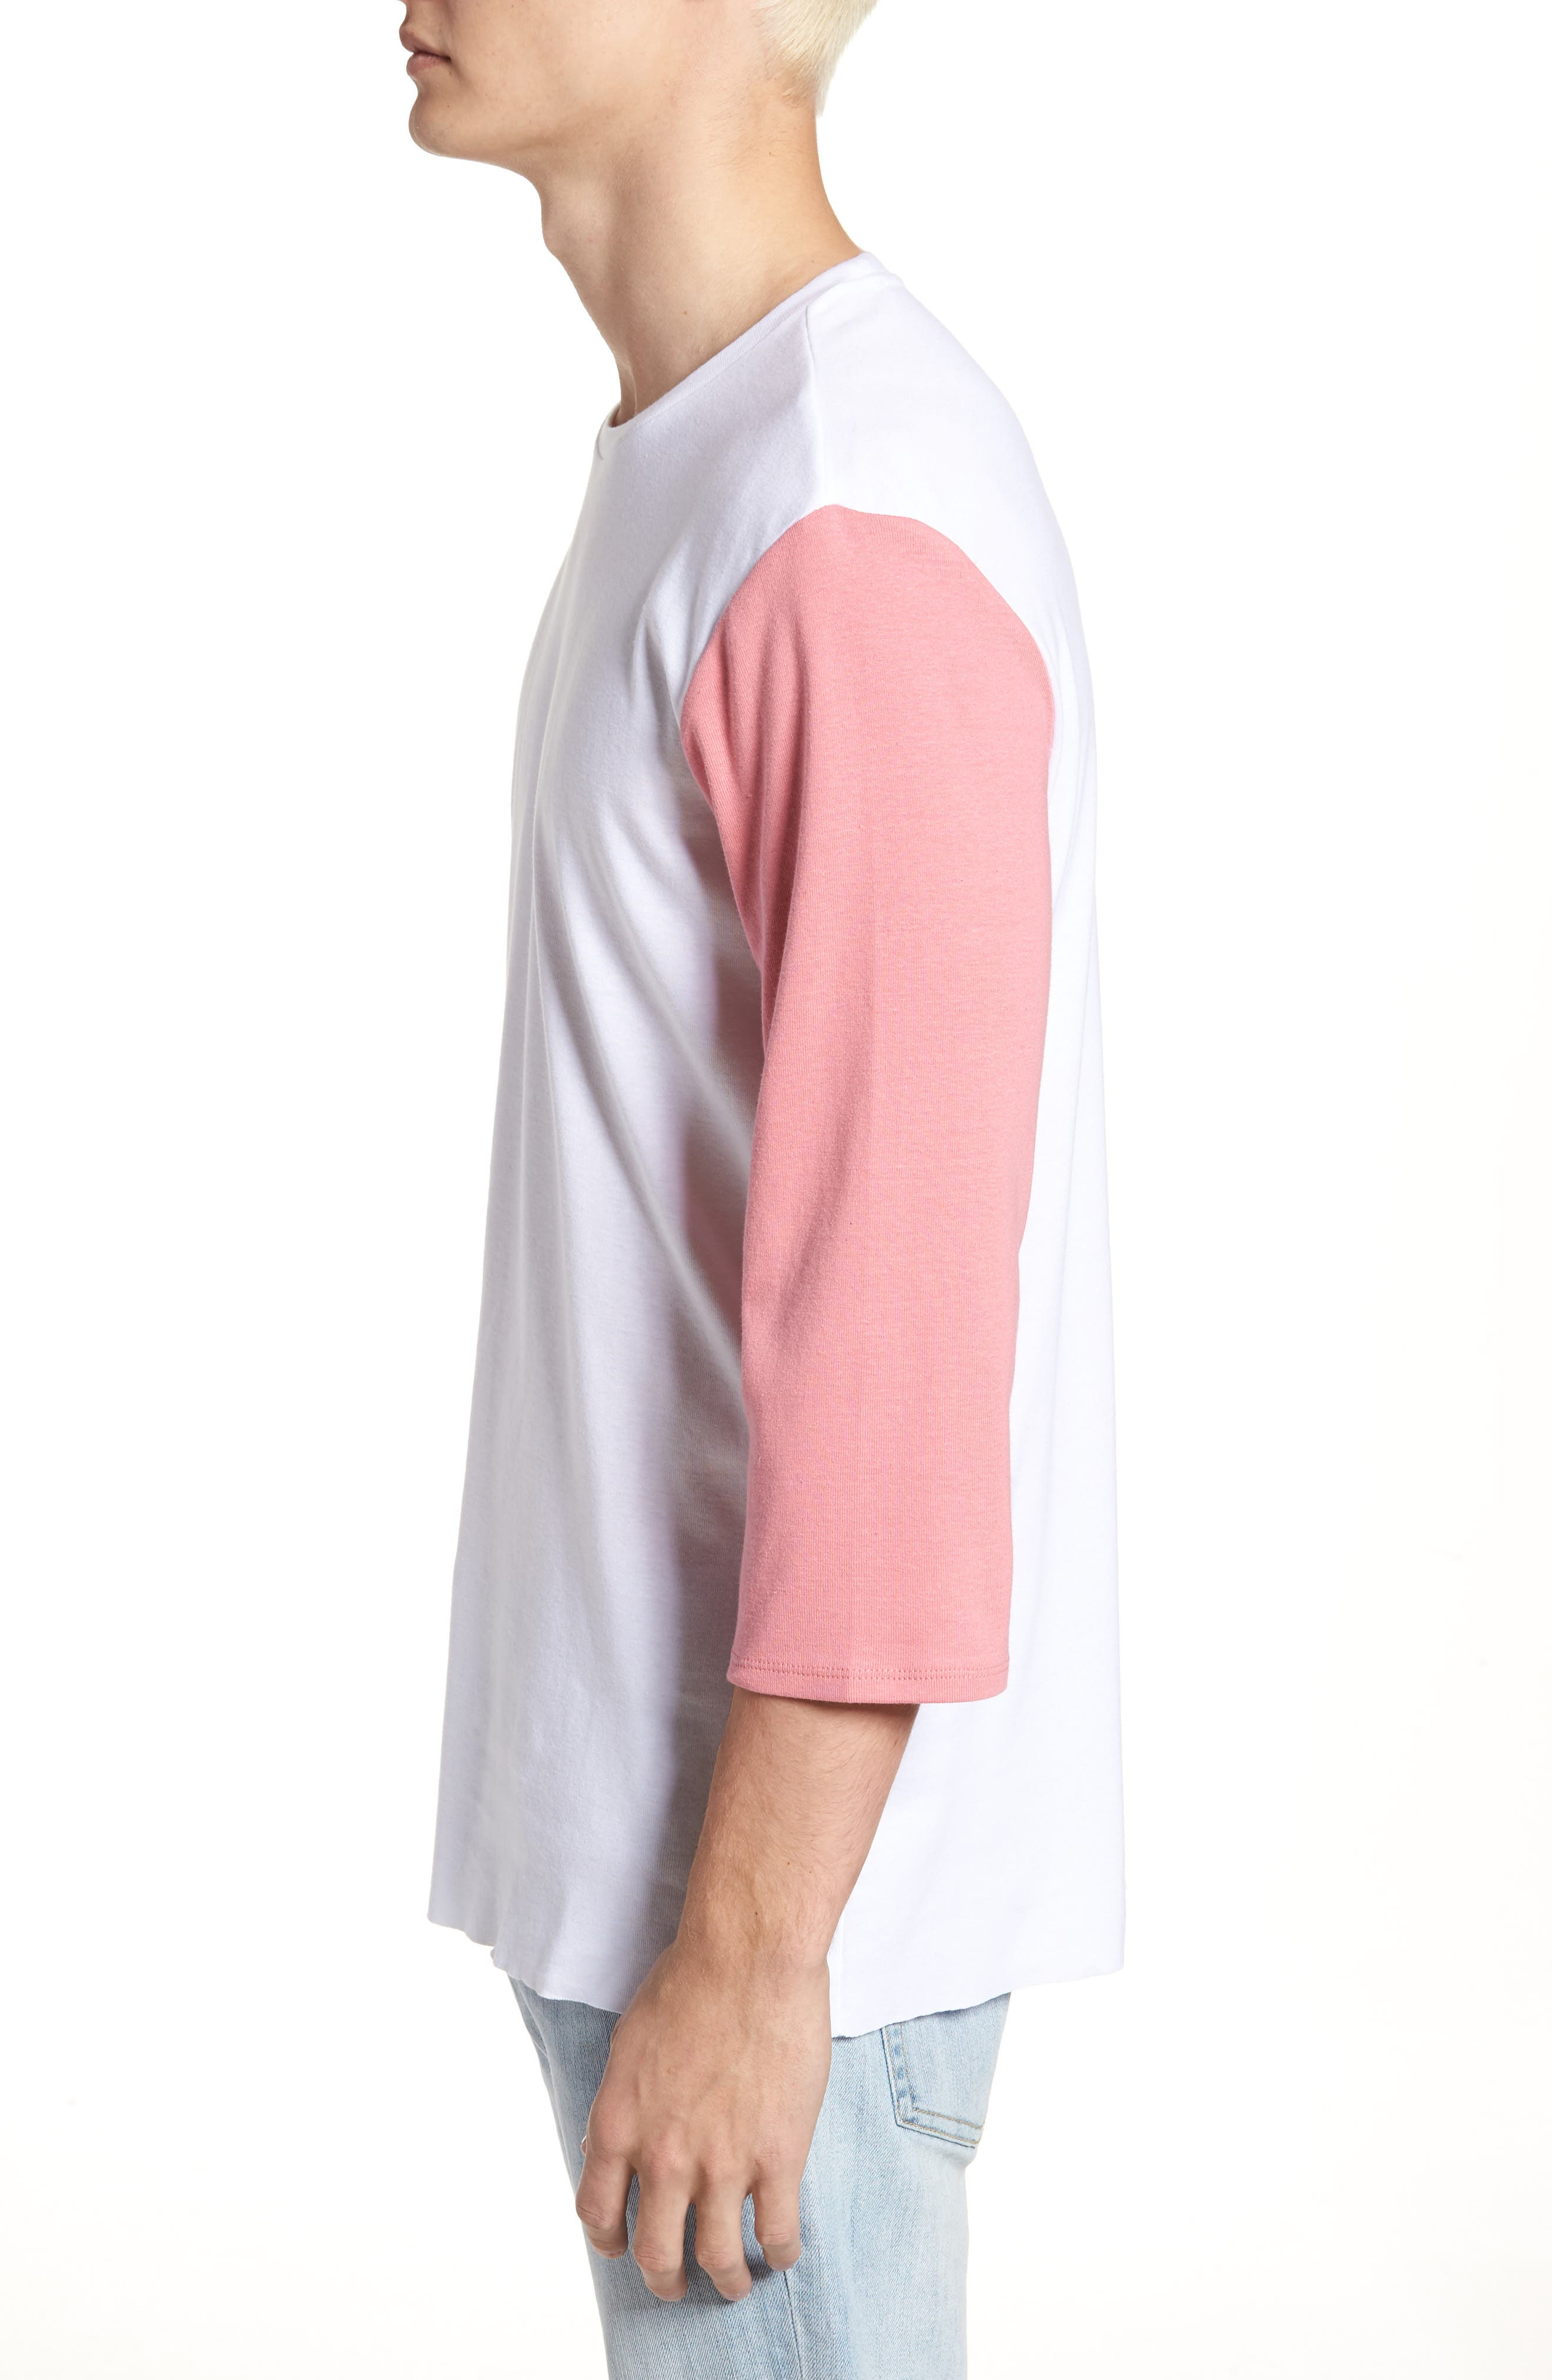 Contrast Sleeve T-Shirt,                             Alternate thumbnail 3, color,                             White/ Pink / Blue